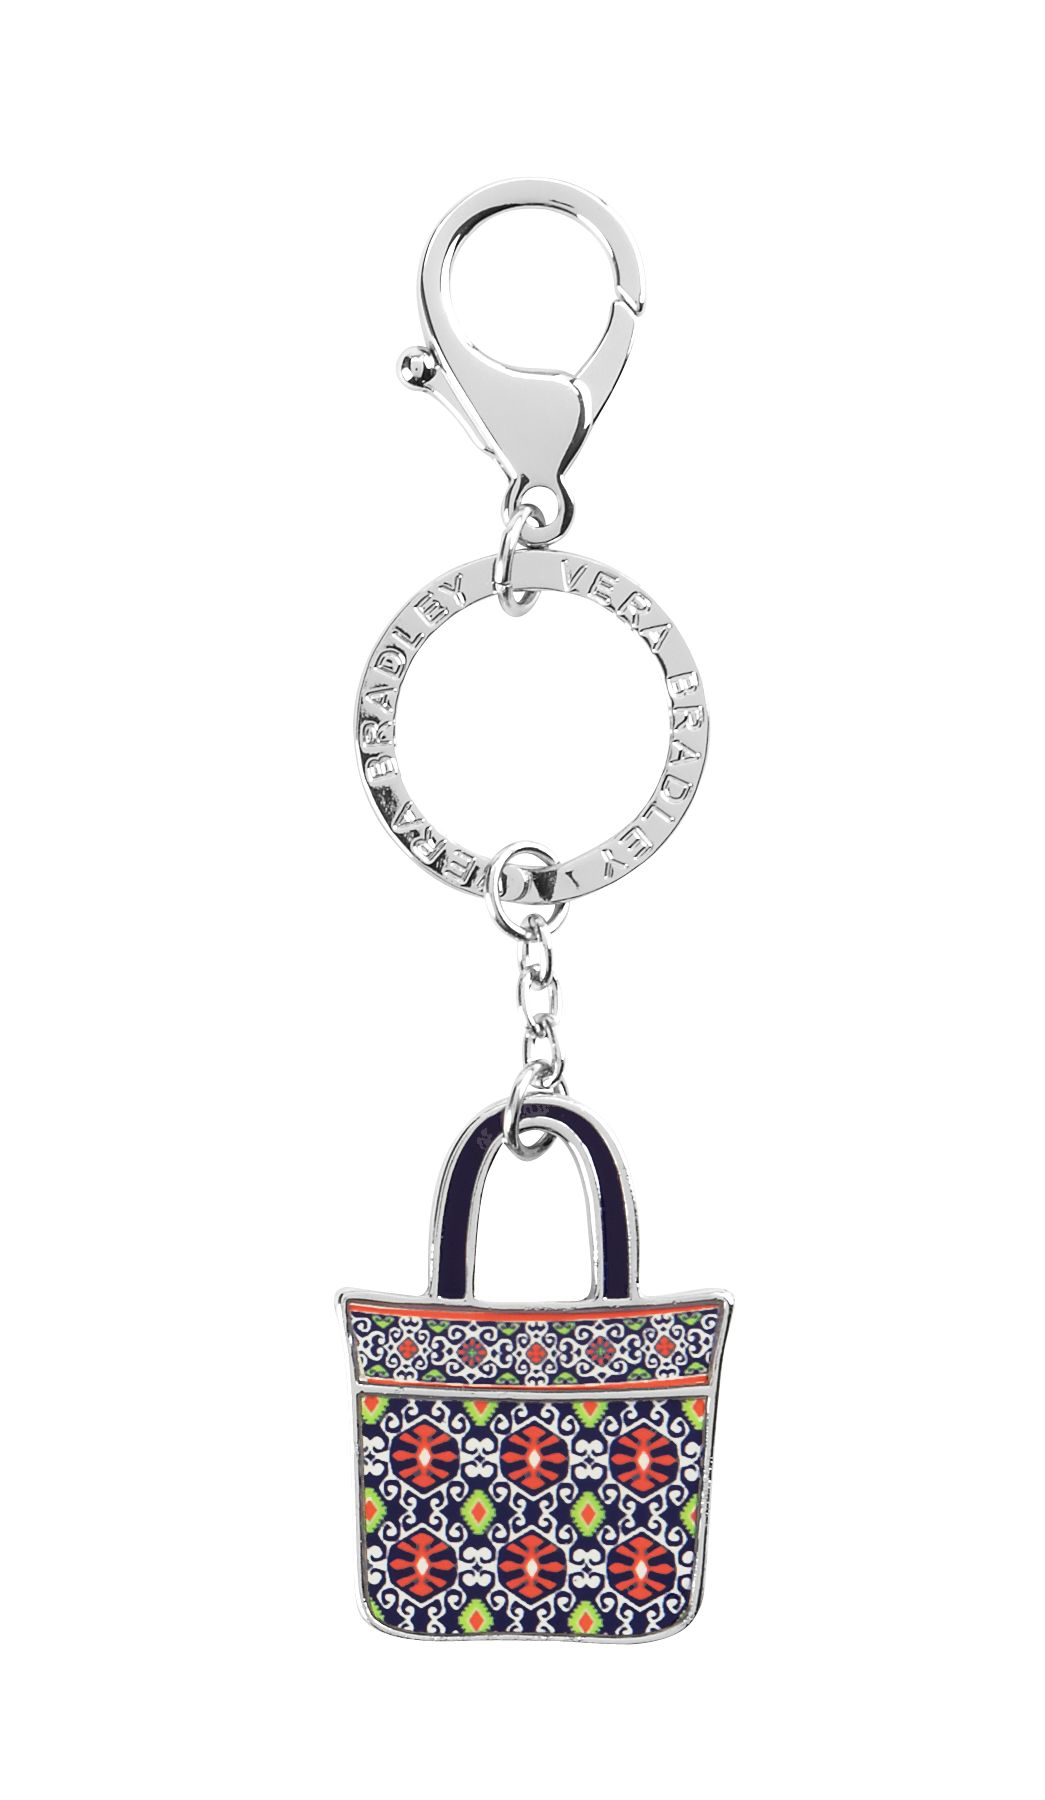 Vera Bradley Tote Around Keychain in Sun Valley $ 15.40